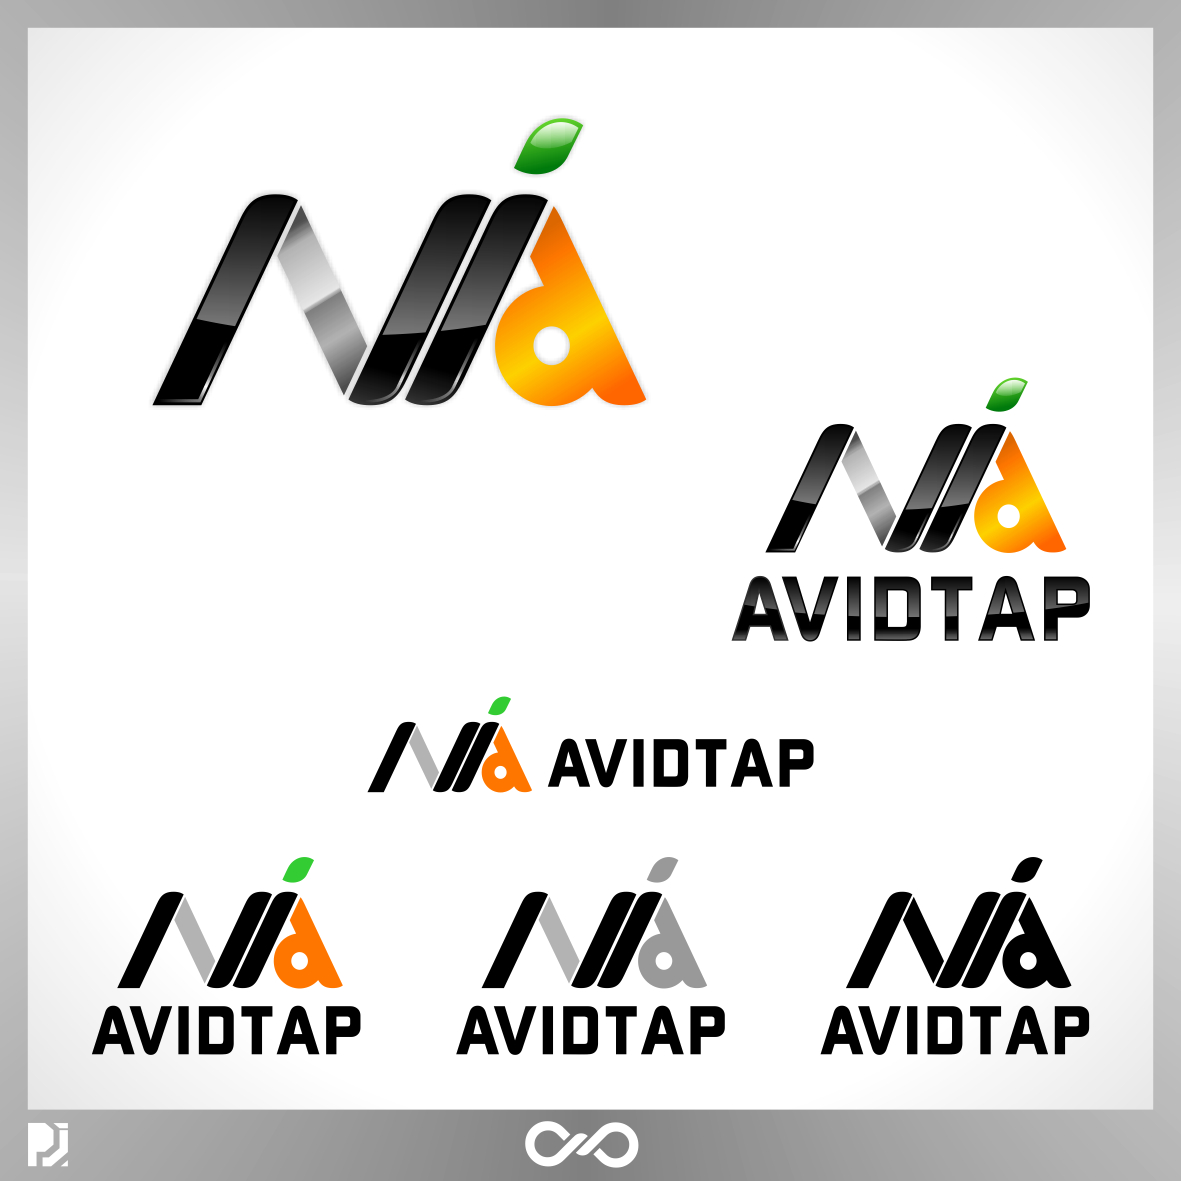 Logo Design by PJD - Entry No. 106 in the Logo Design Contest Imaginative Logo Design for AvidTap.